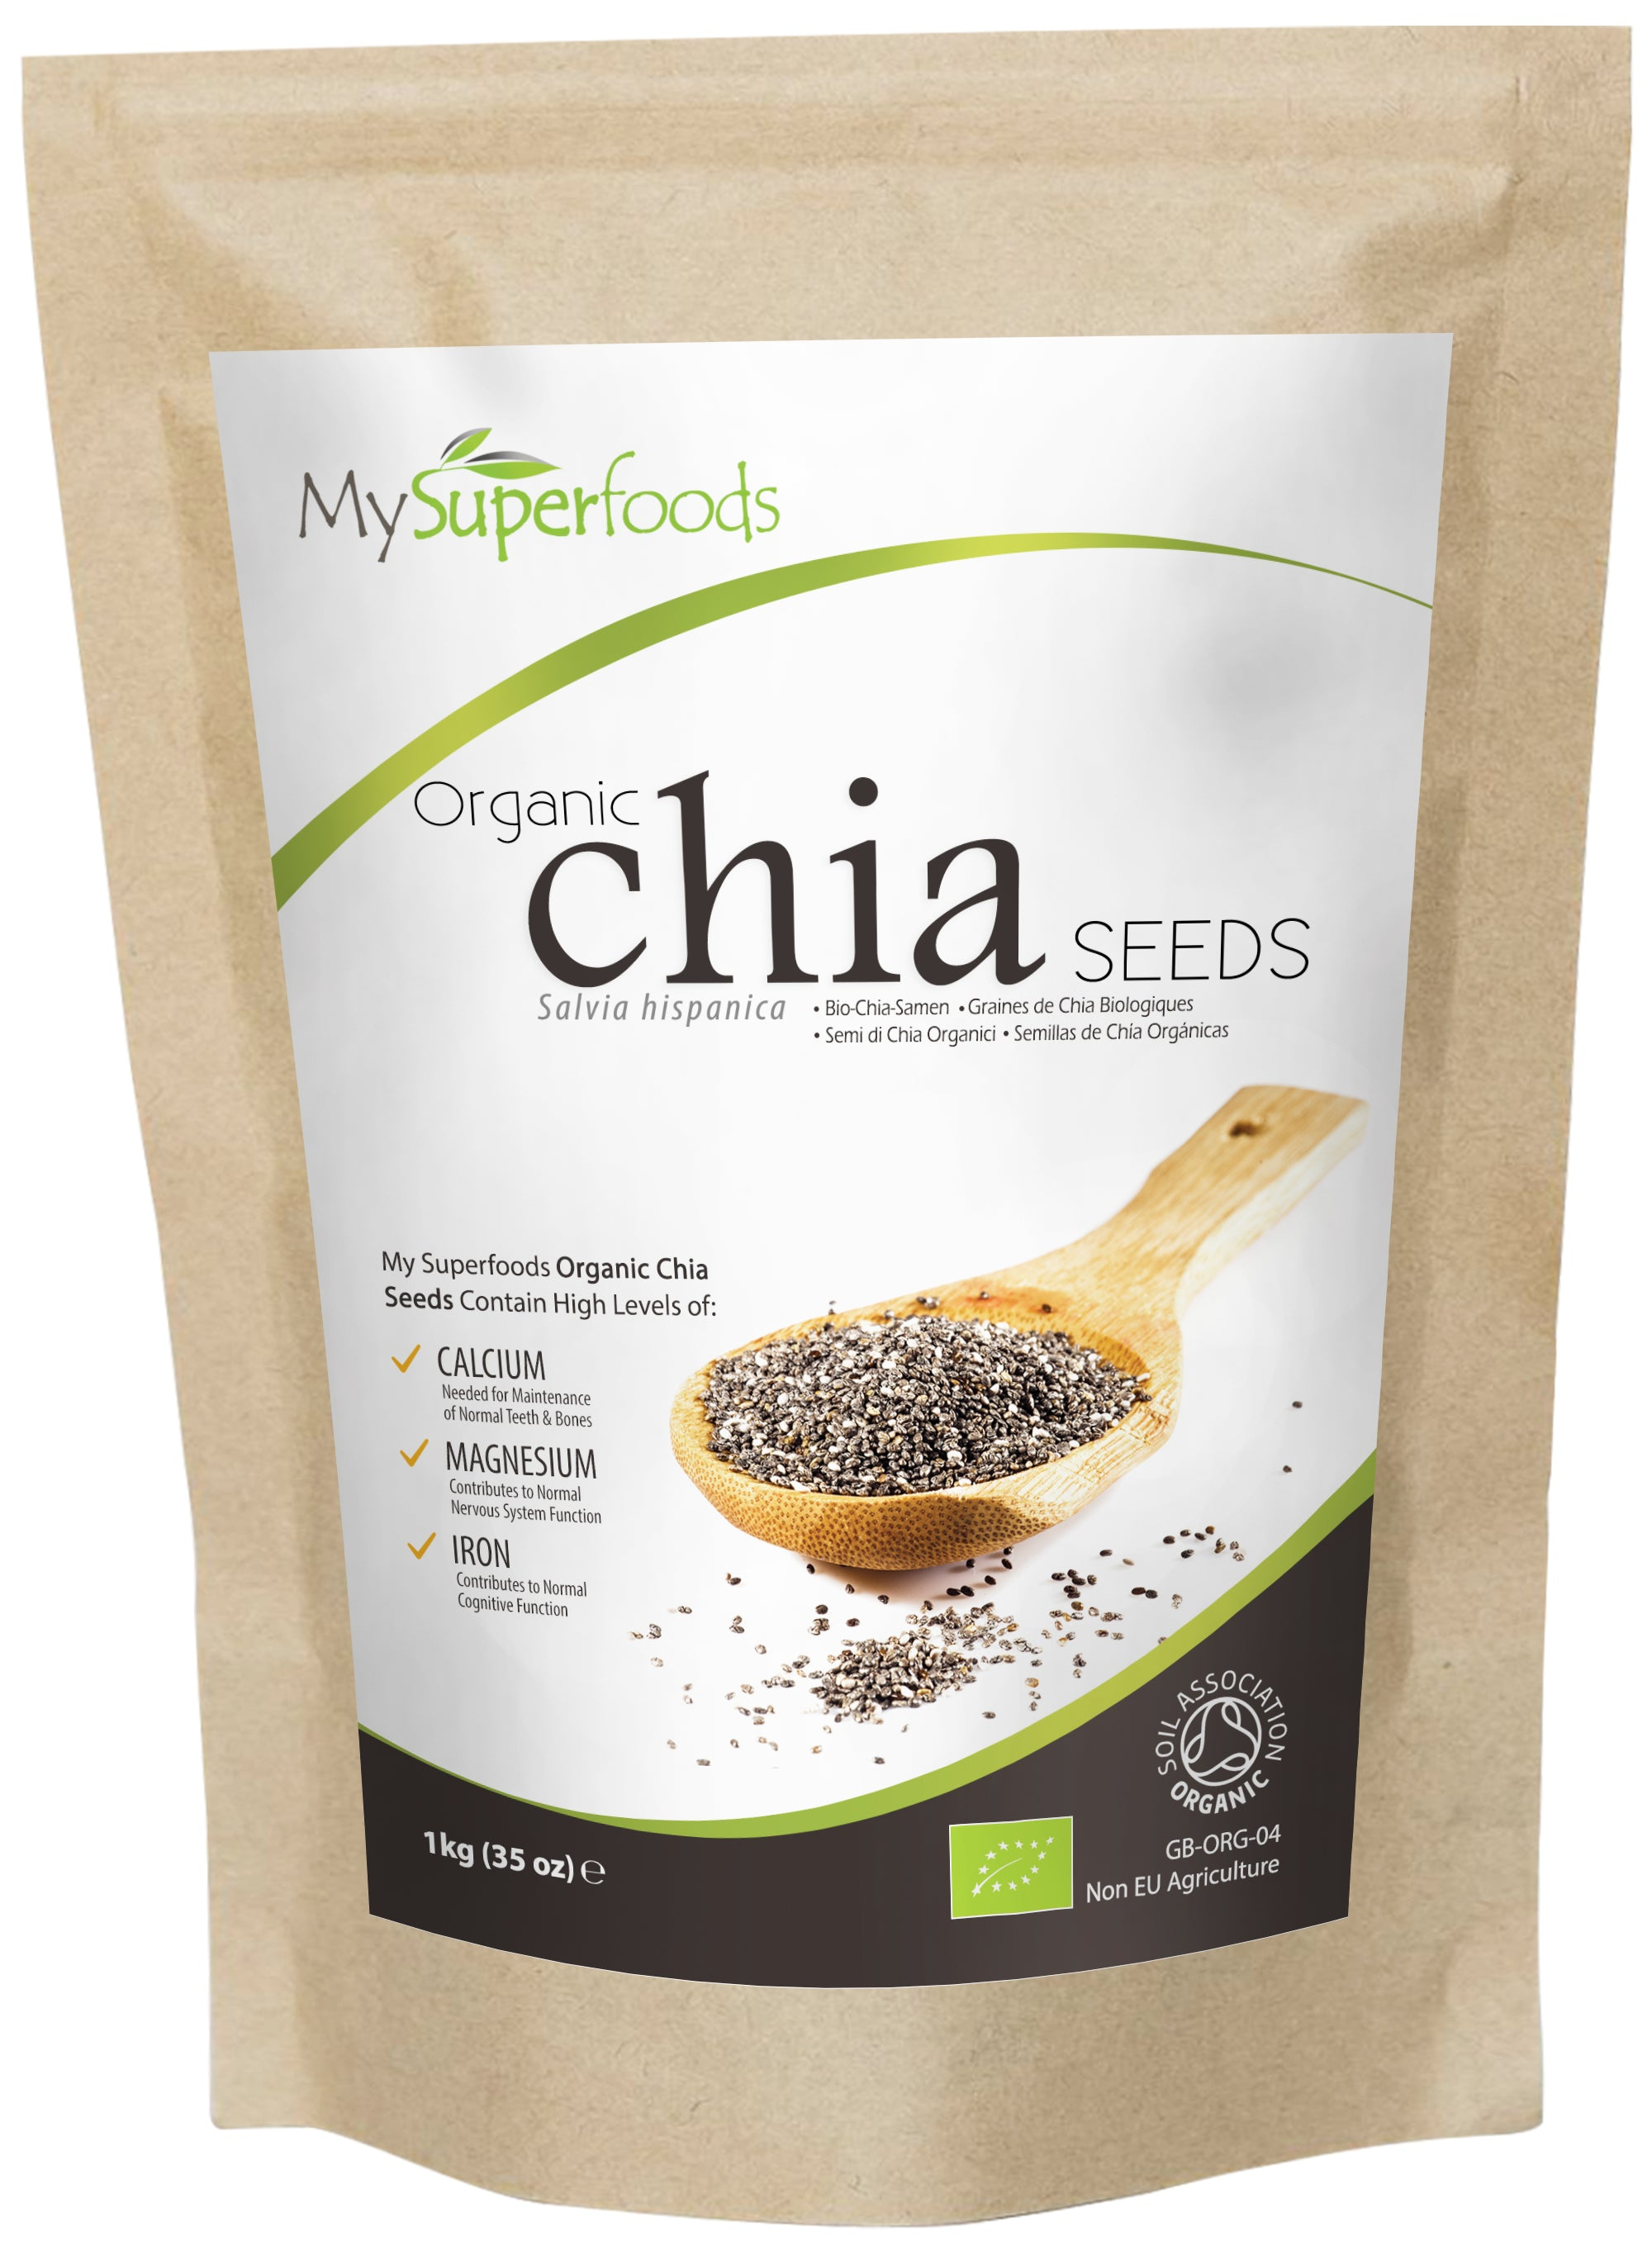 Semi Biologici di Chia